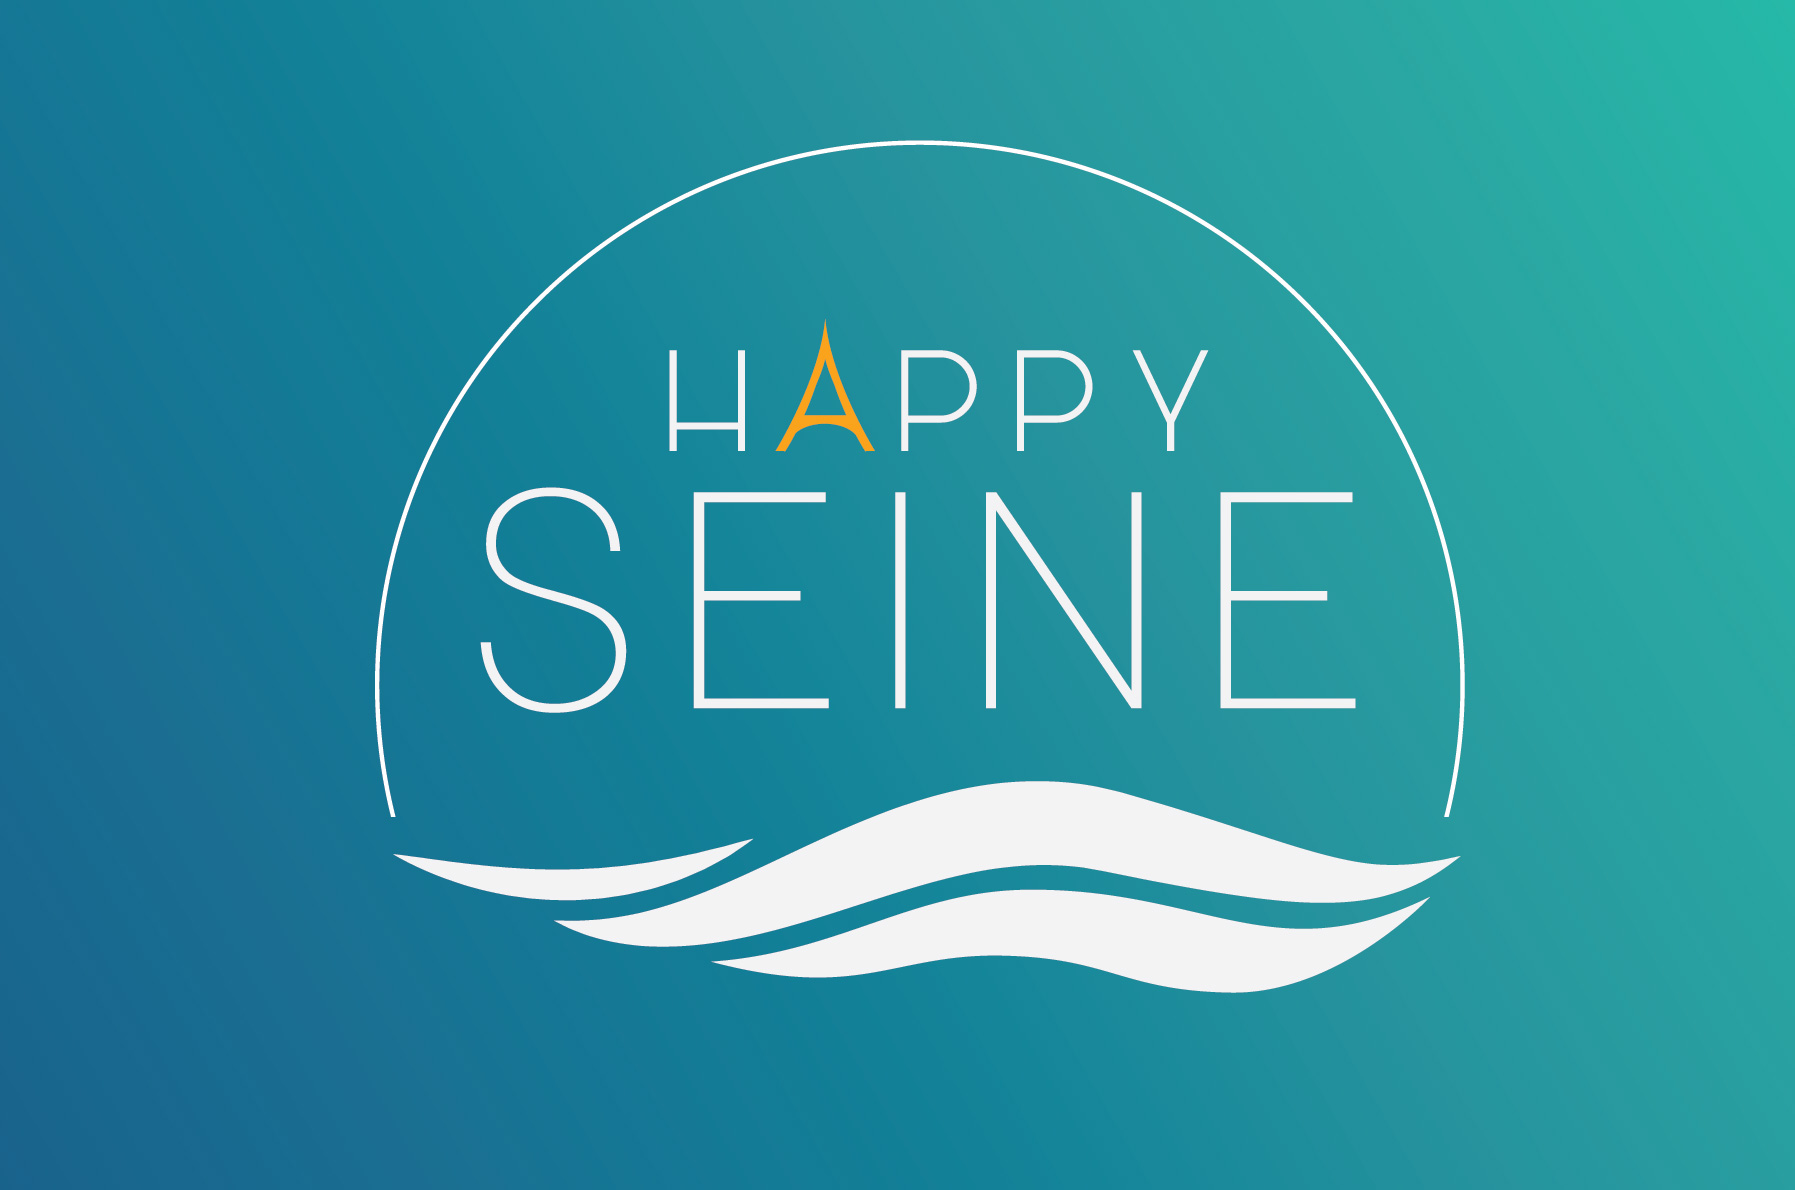 Happy Seine Logo